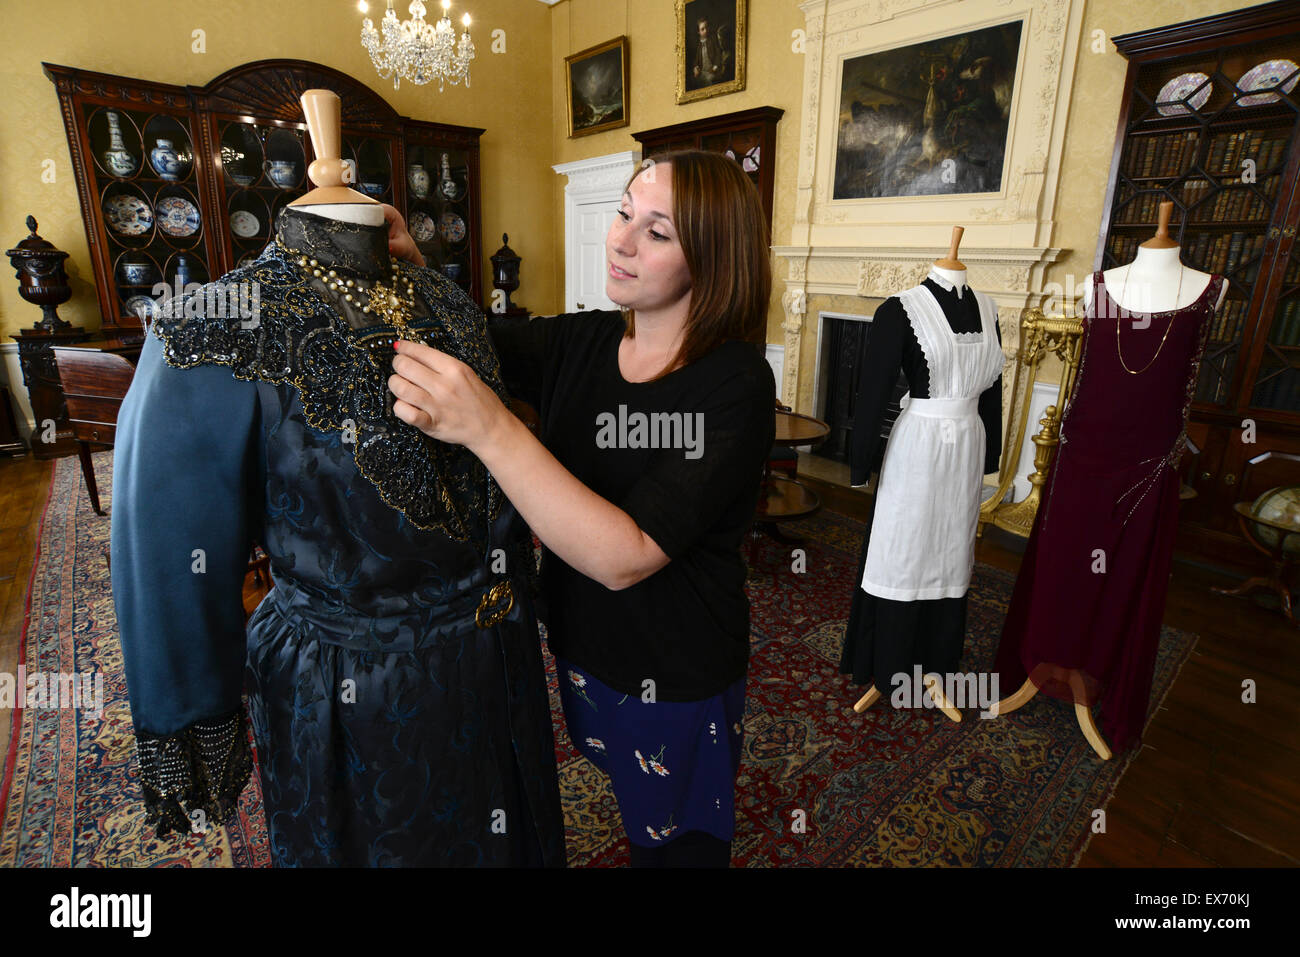 jemma conway with costumes from television drama series downton